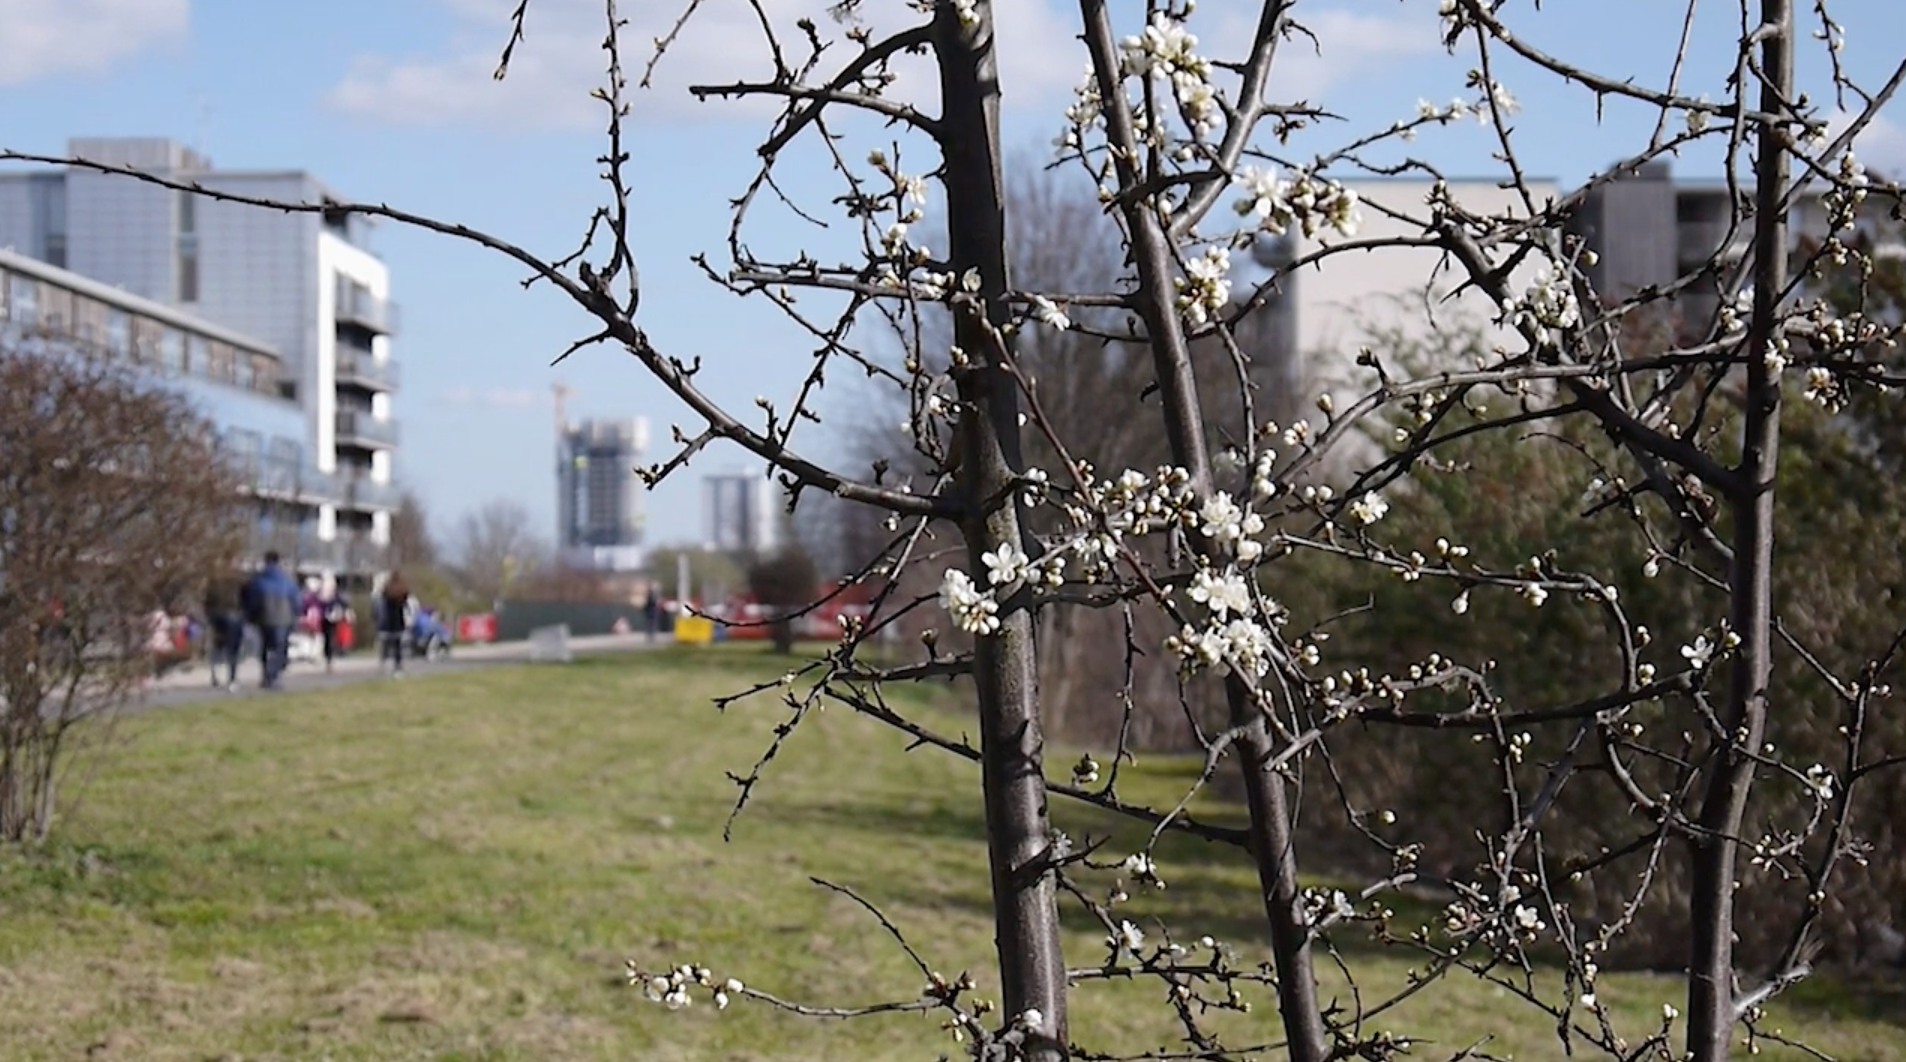 A shot of the Greenway in Hackney – in the foreground is a sapling with white blossom and thorns on its branches. In the background out of focus is an area of grass and a number of people in winter coats are walking along a paved path. It is a bright sunny day.